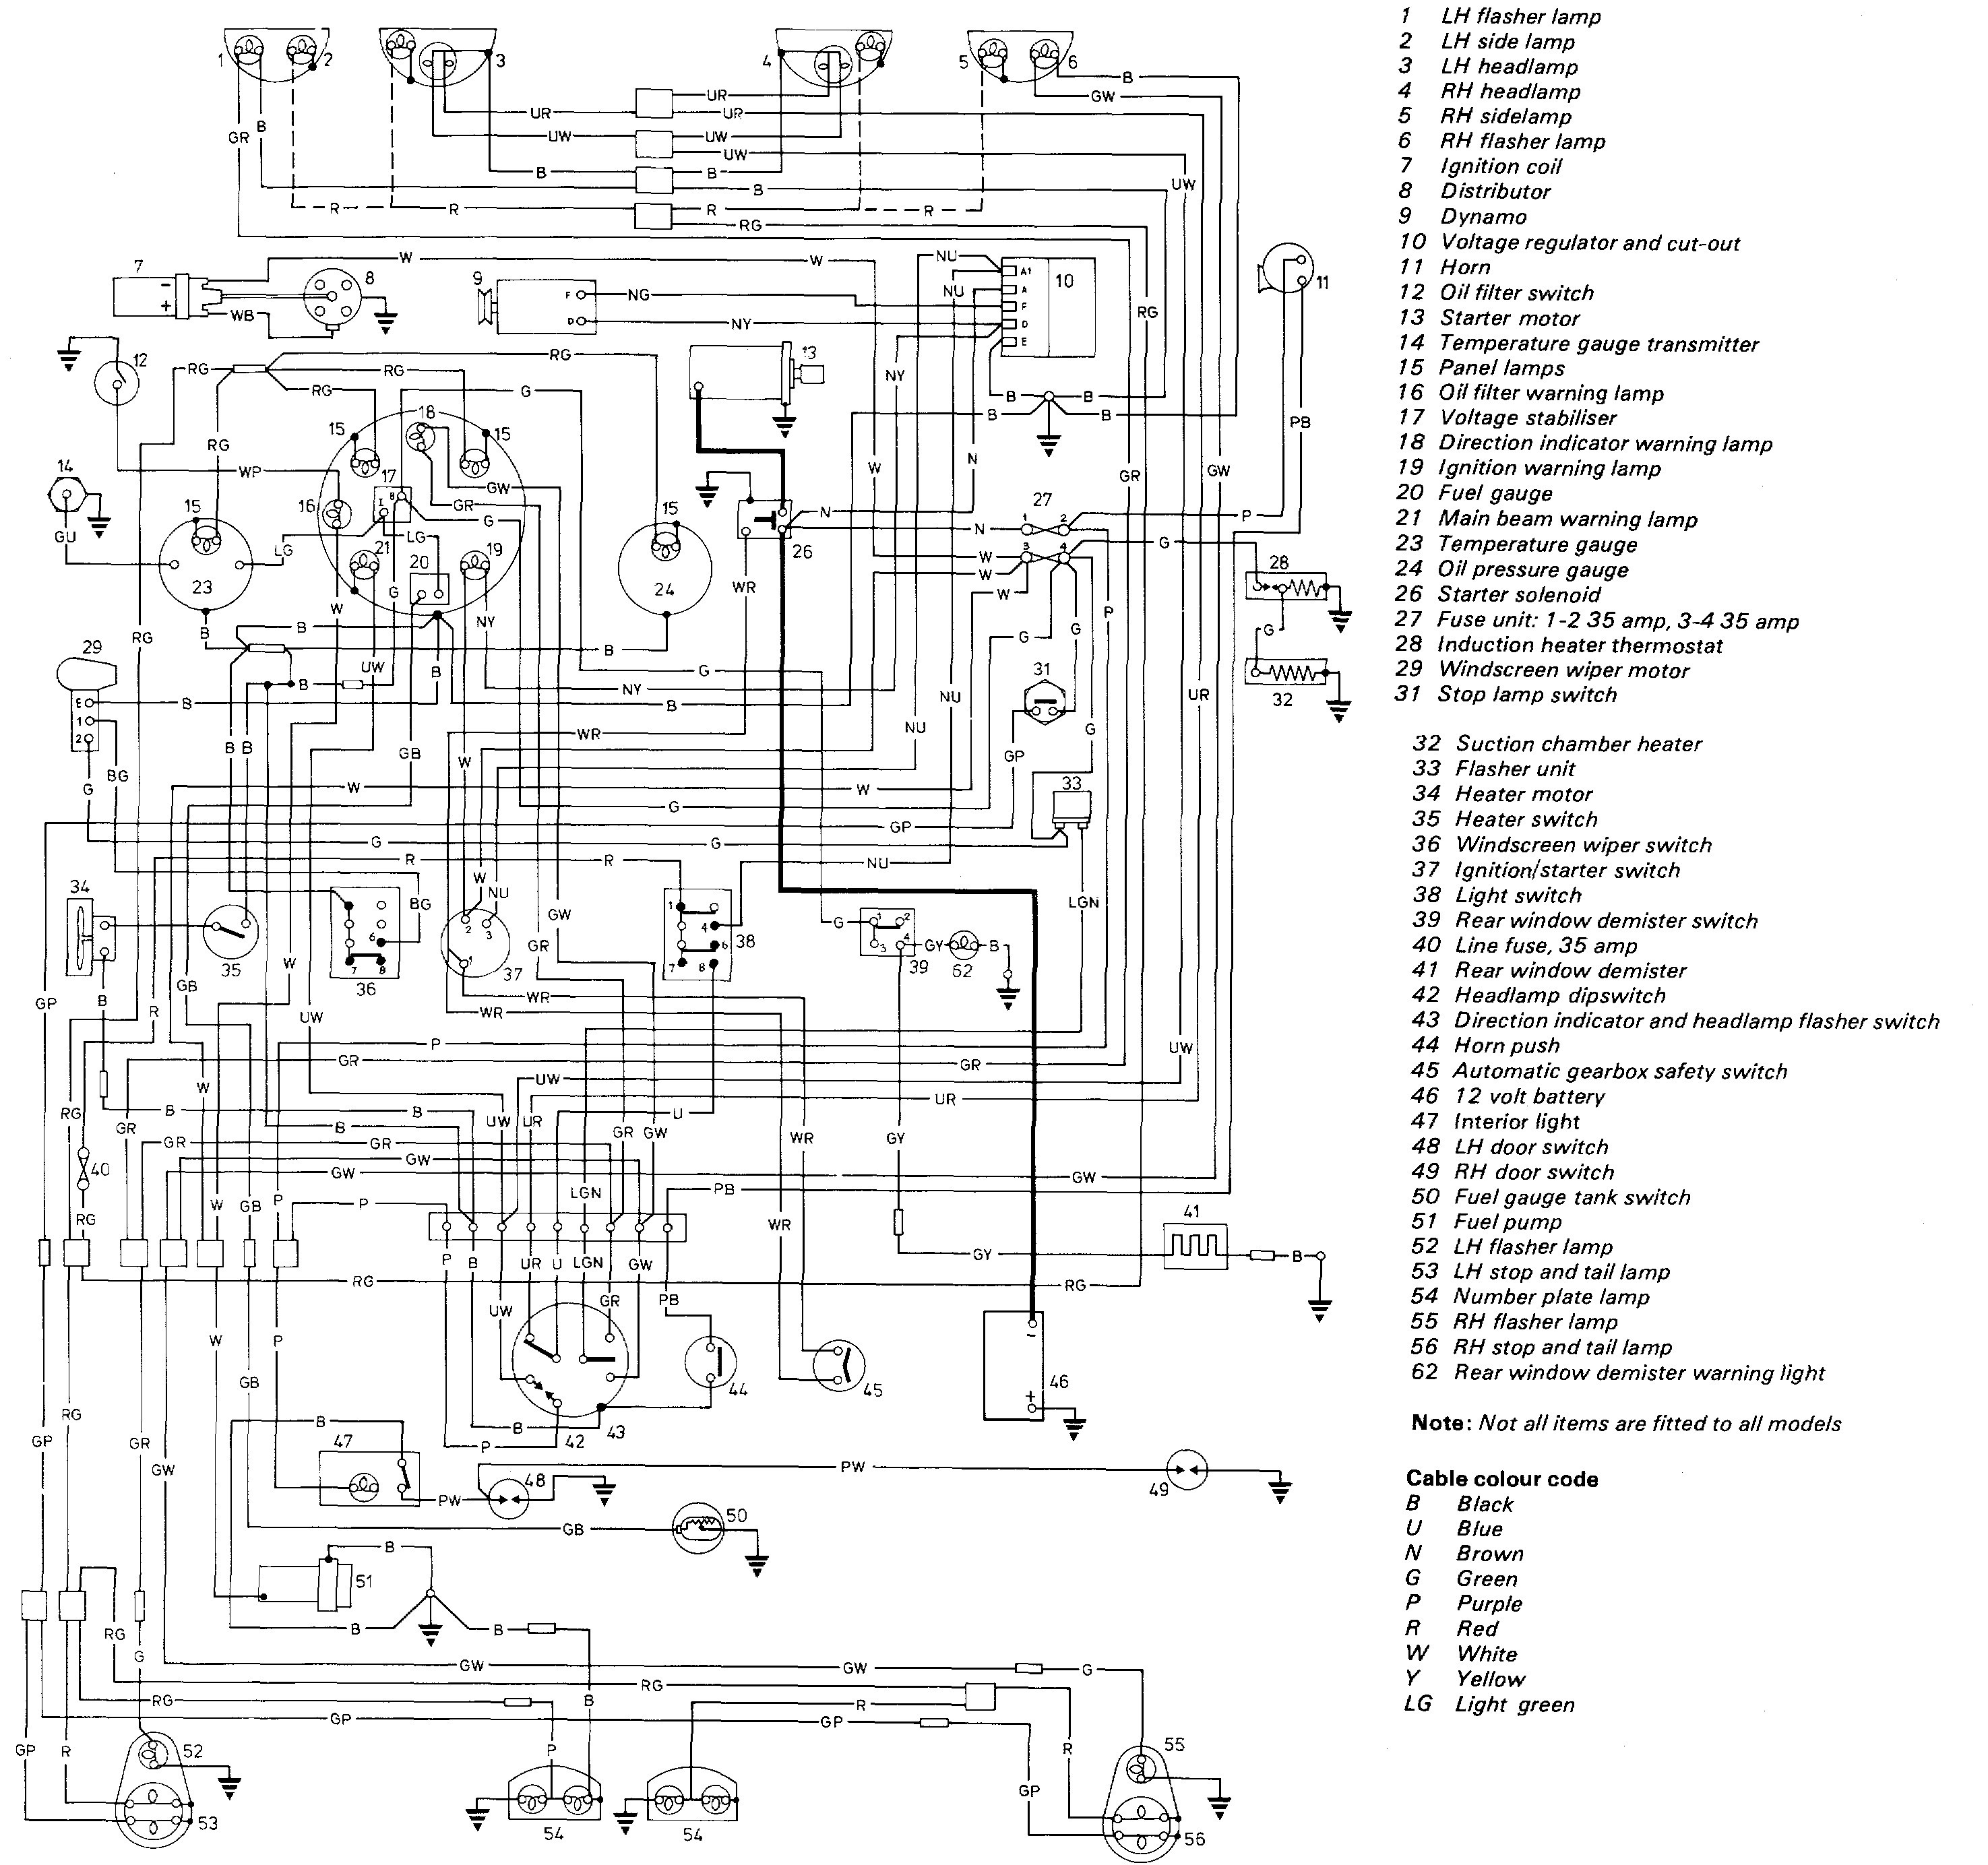 classic mini engine diagram my wiring diagram rh detoxicrecenze com